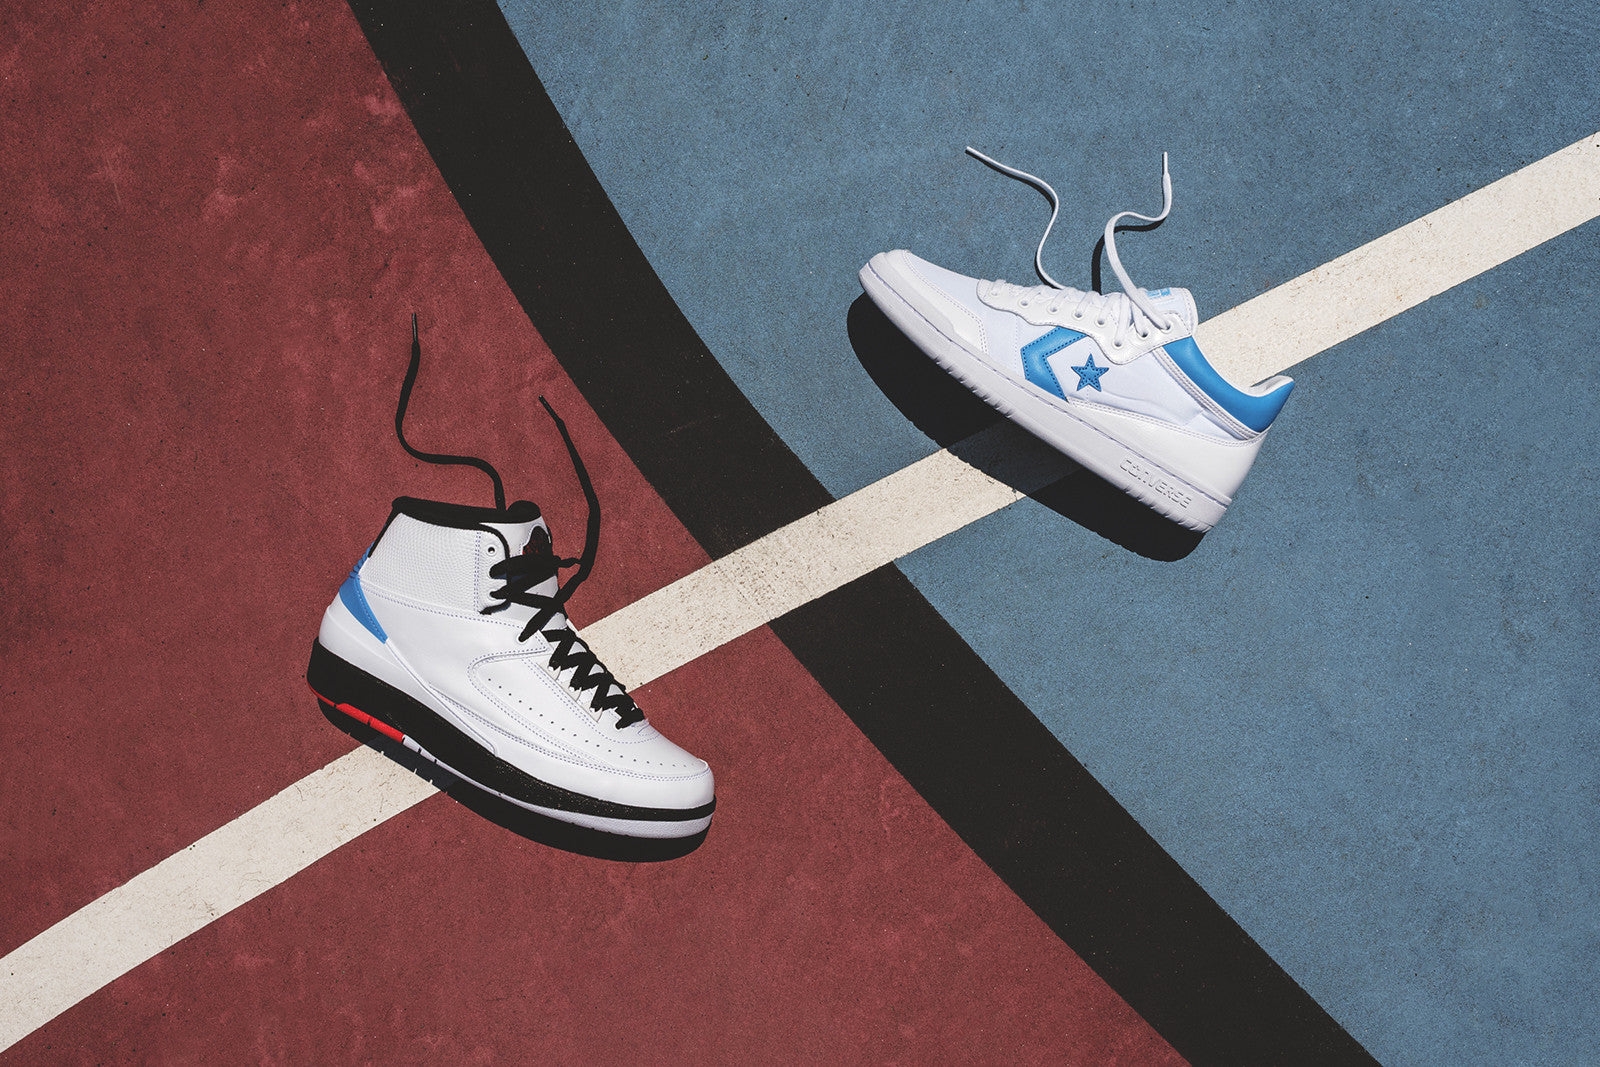 san francisco 82689 bd8f3 Nike Air Jordan x Converse Pack - White   Carolina Blue. June 28, 2017. -6.  -1